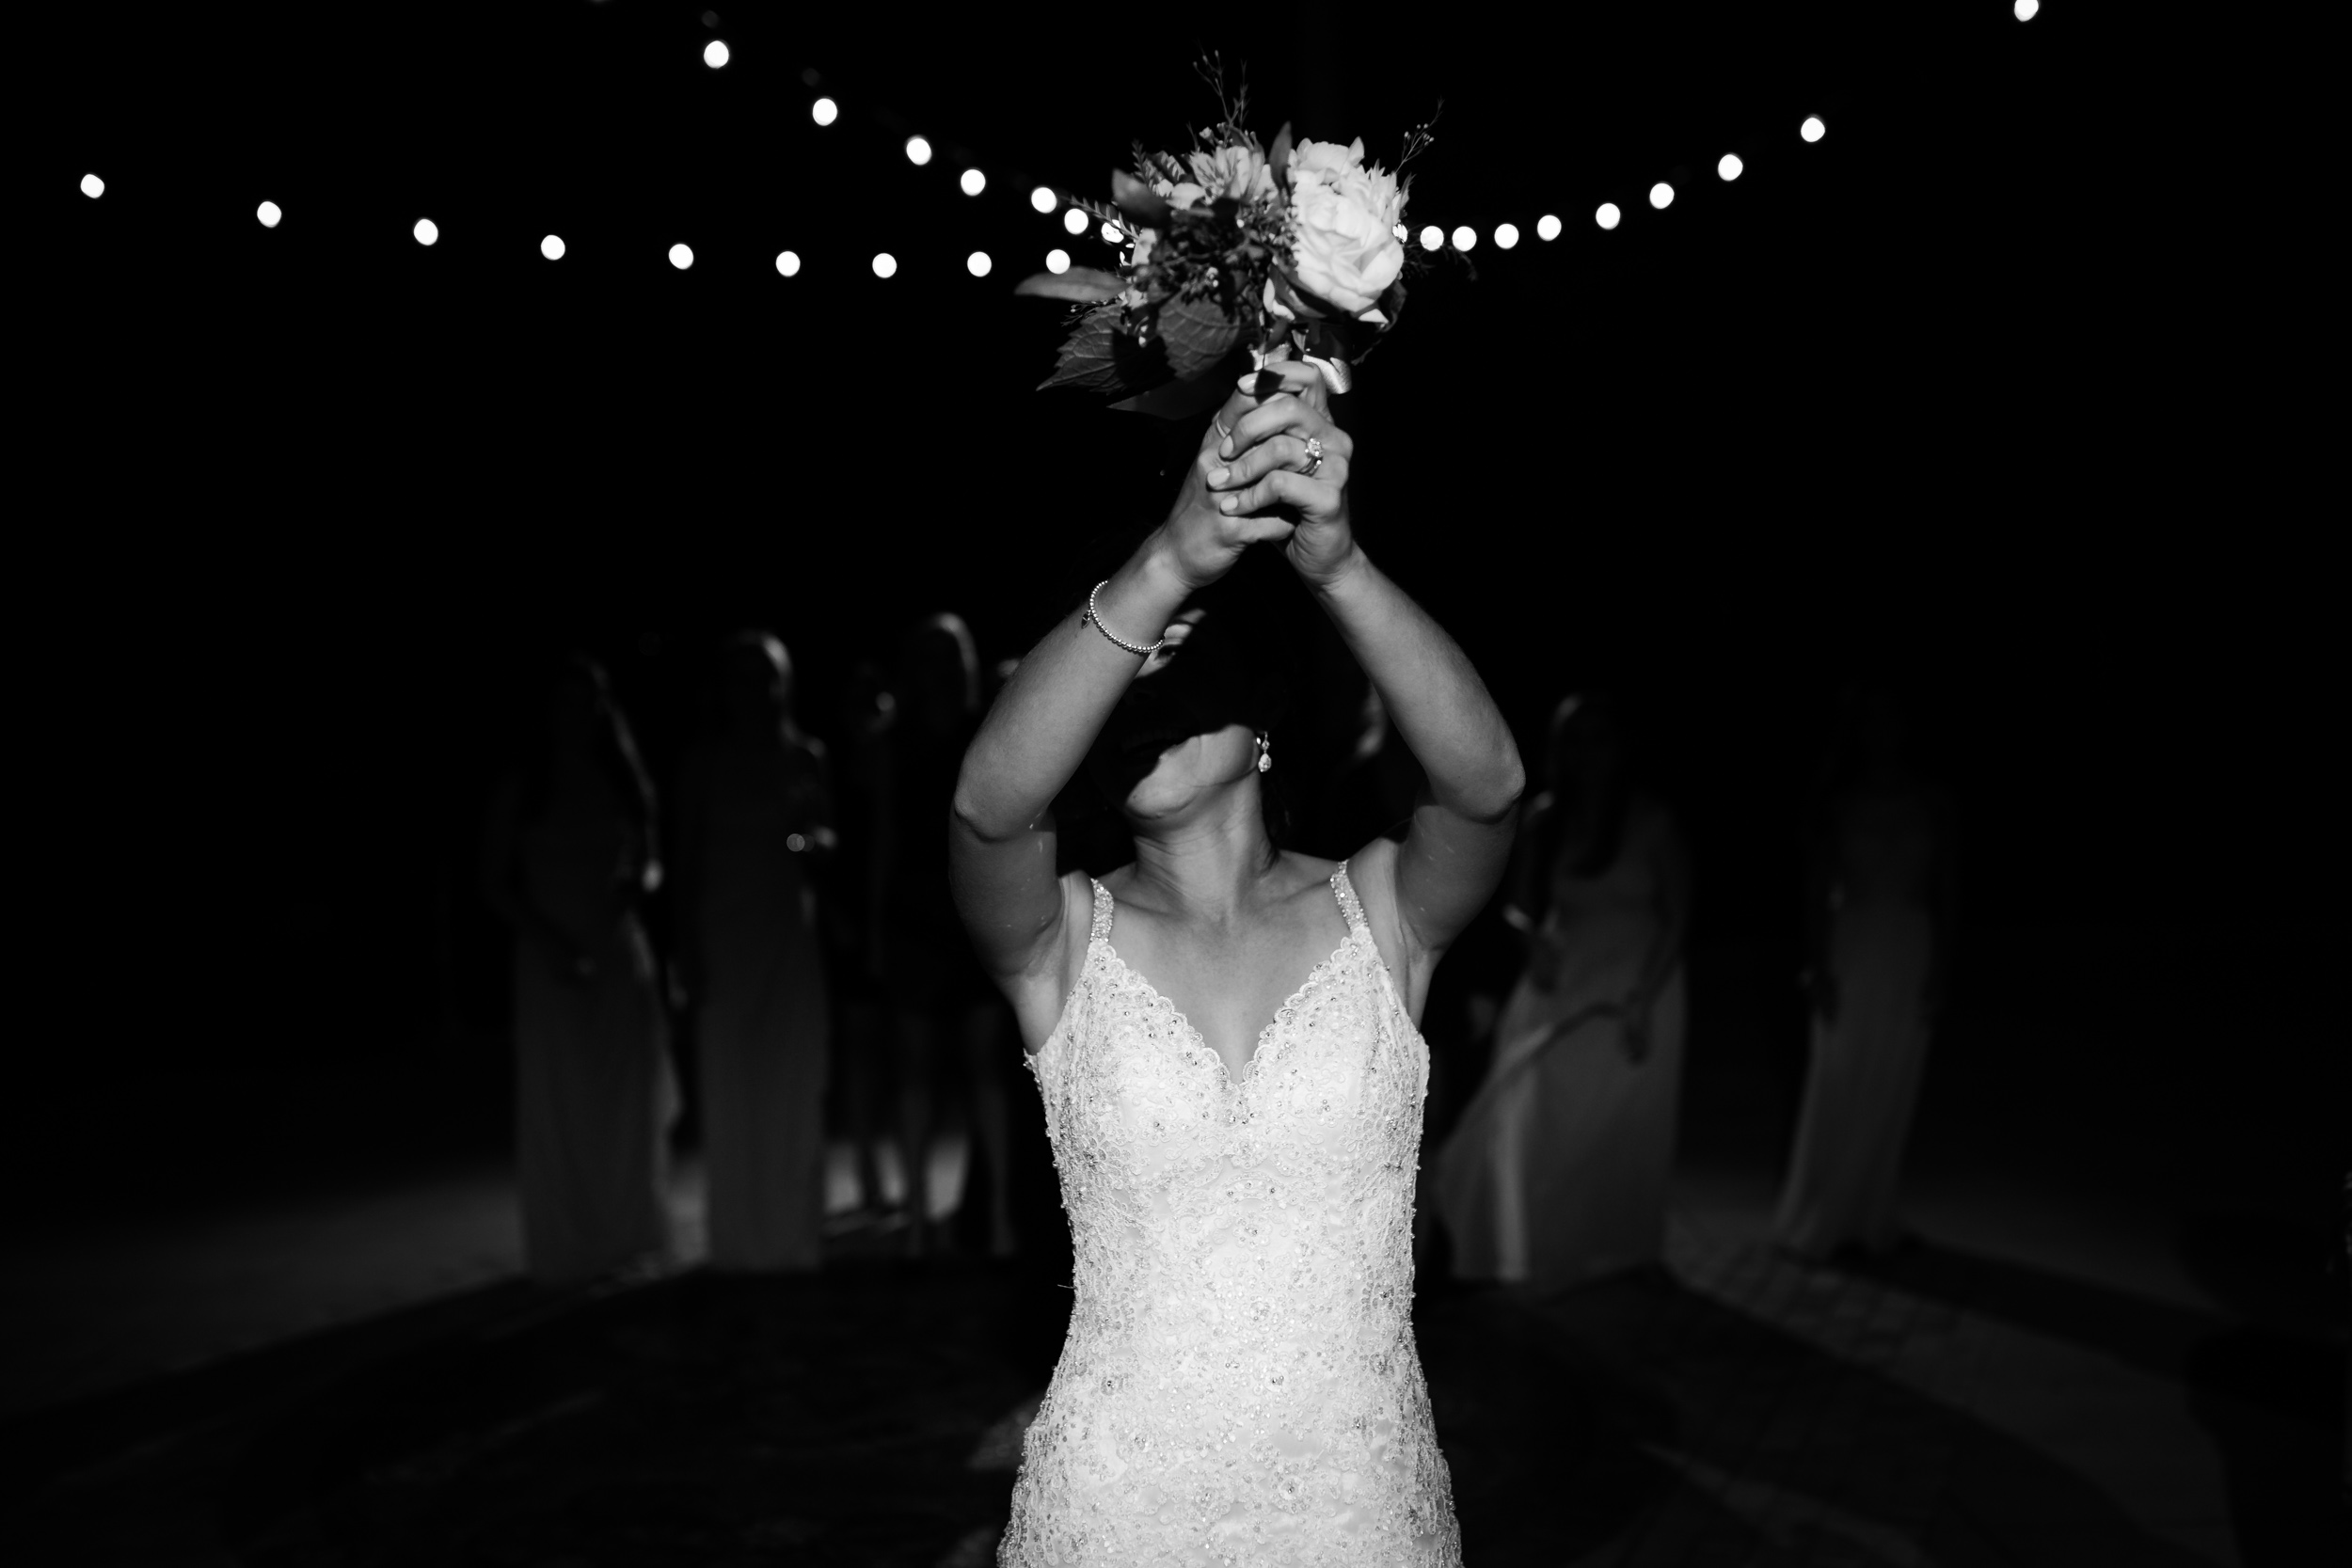 Flordia-Wedding-Photography-76.jpg